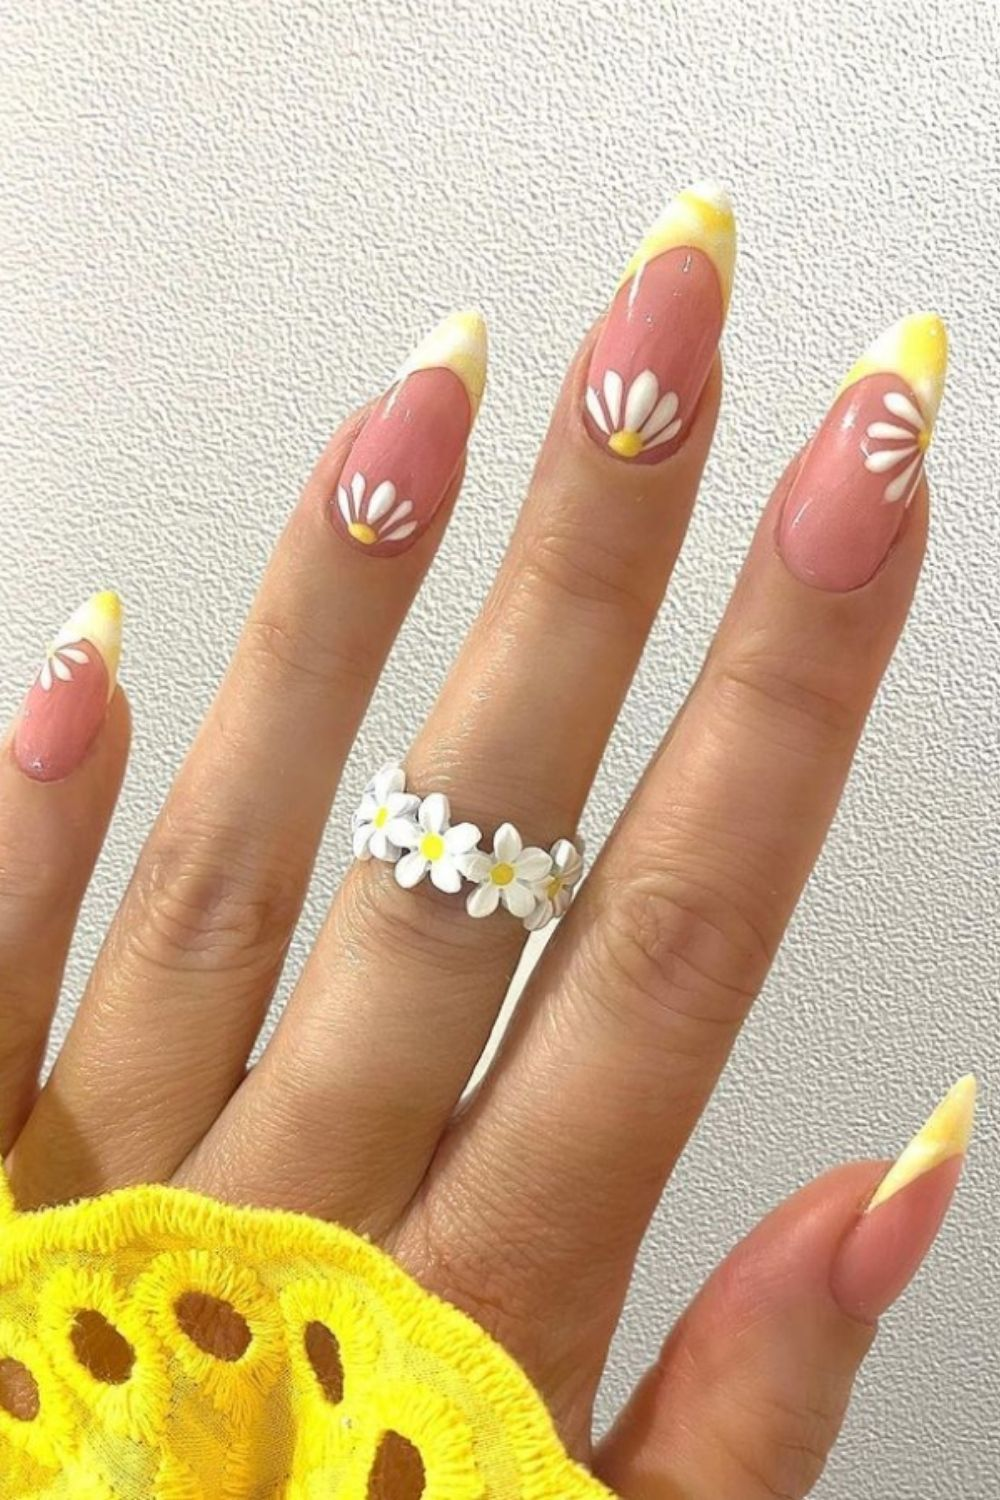 Flower and yellow tip acrylic almond nails design